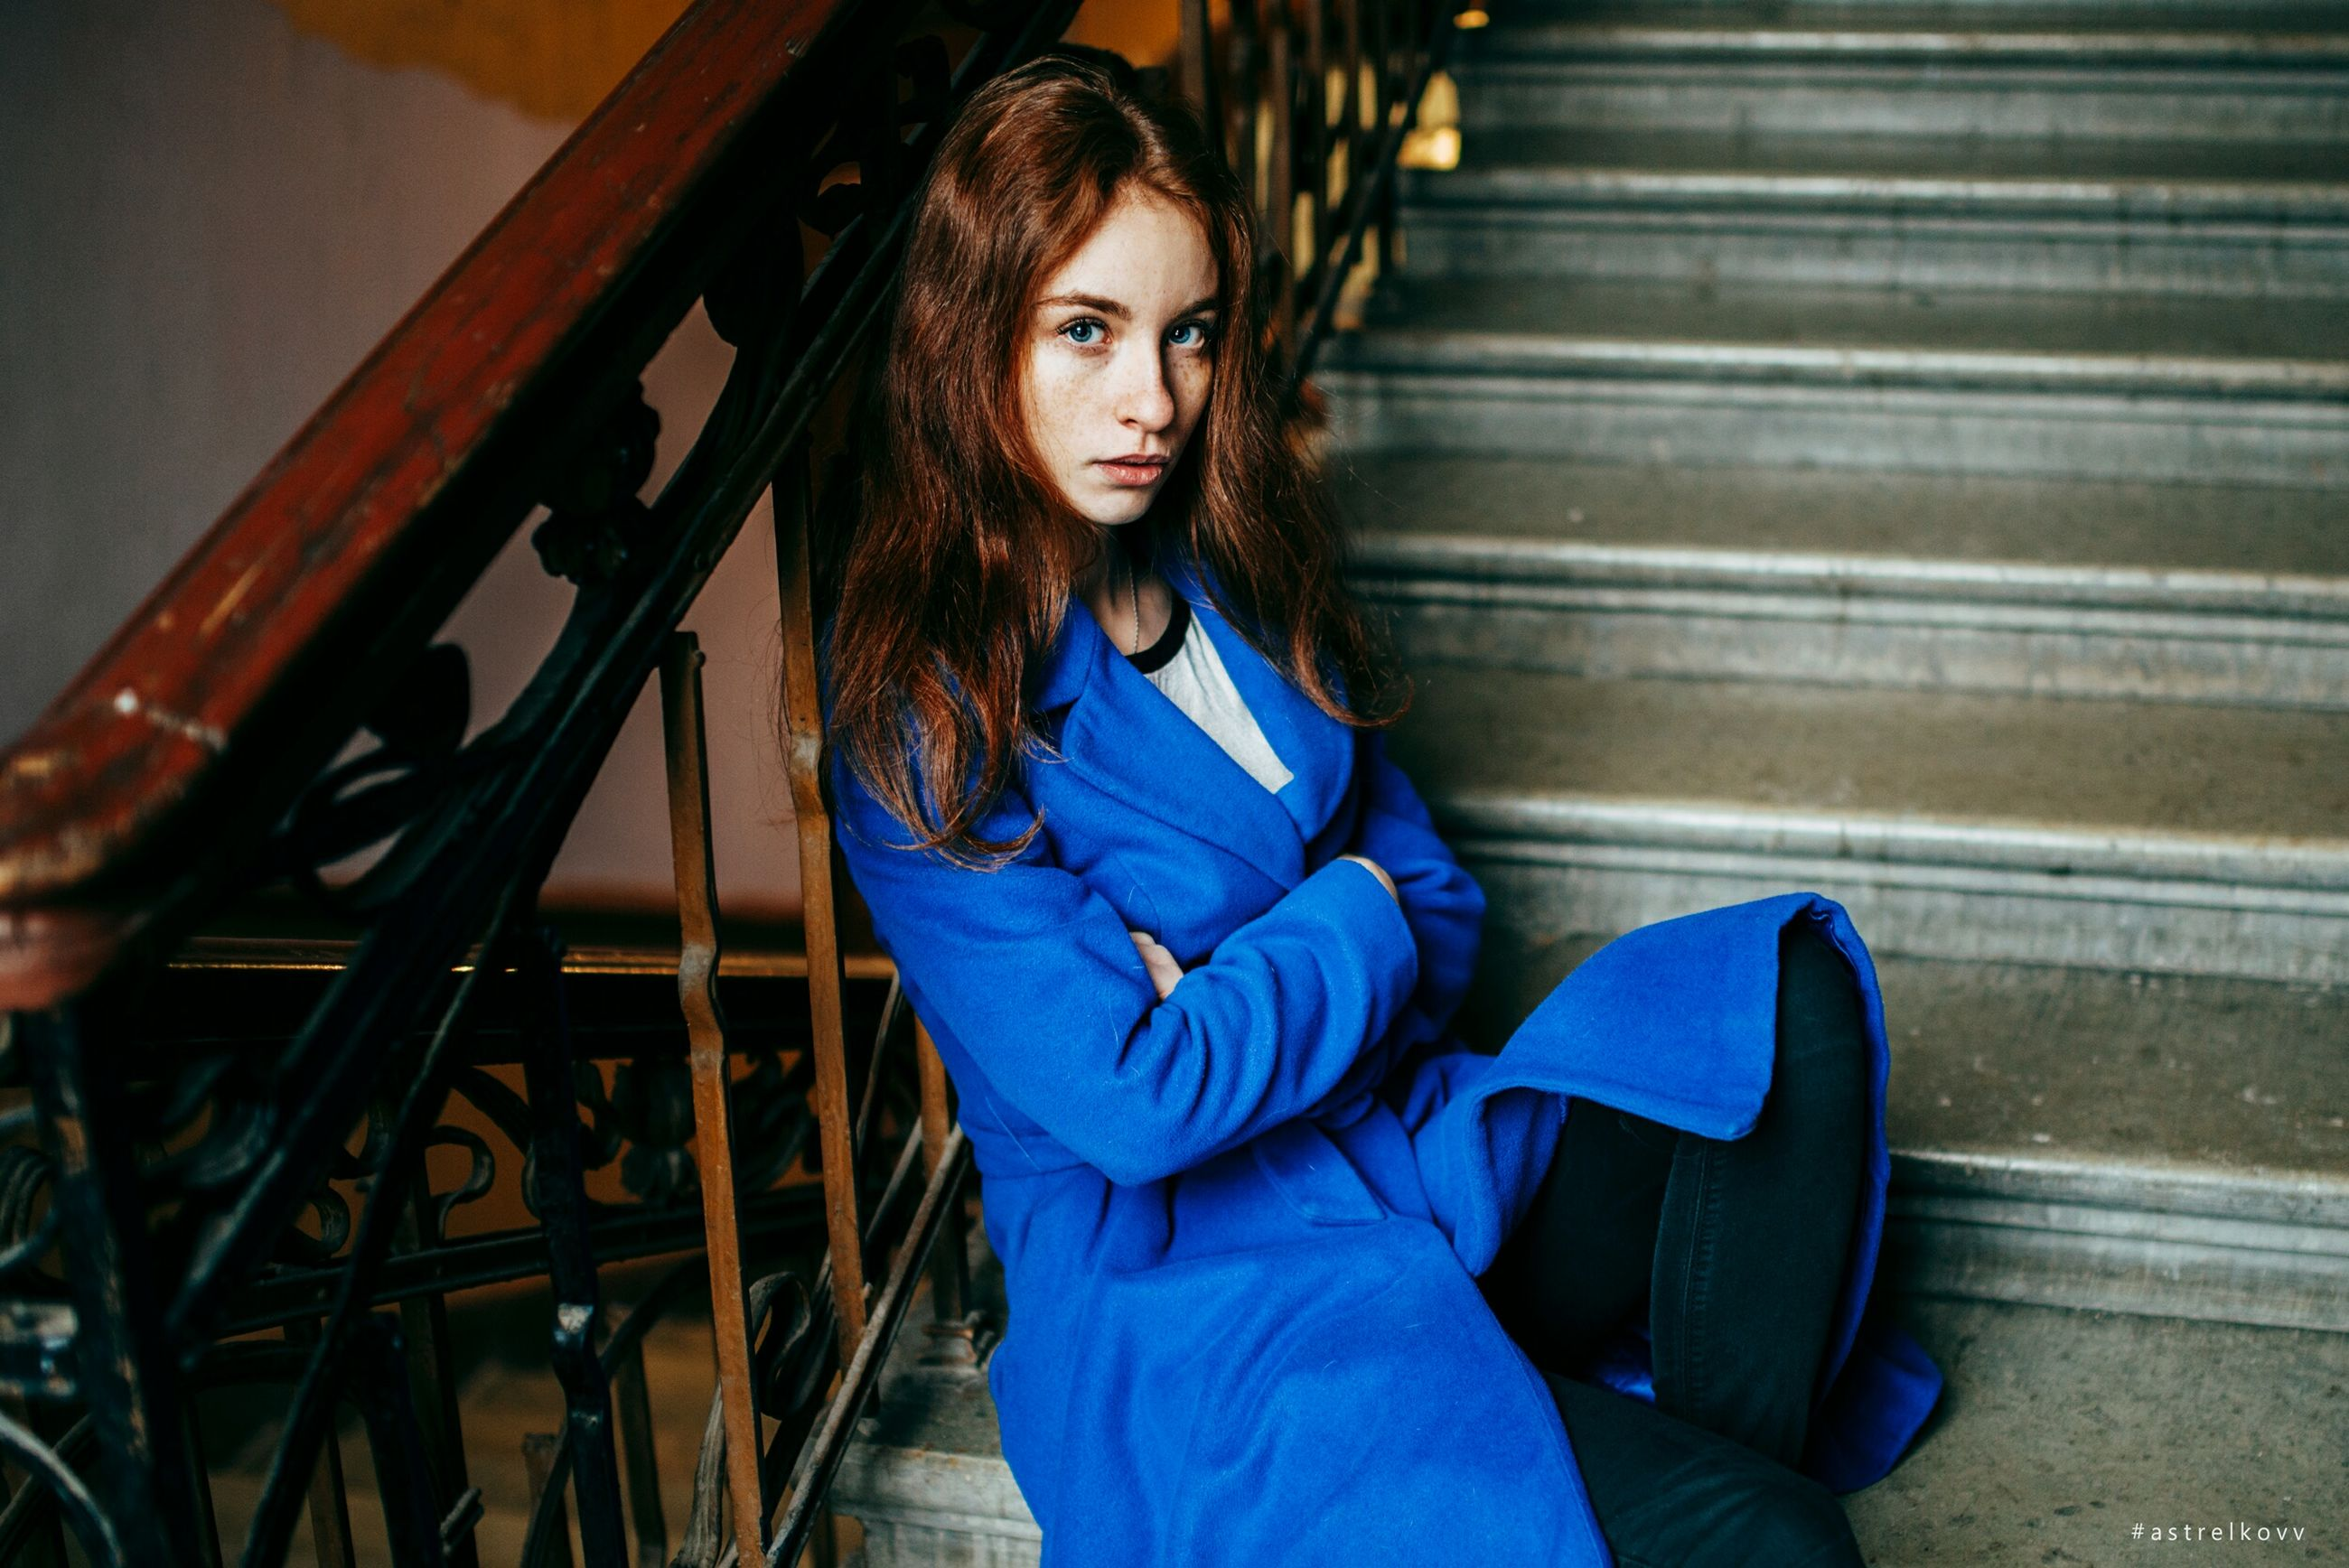 steps, young adult, one person, staircase, beautiful woman, real people, young women, blue, steps and staircases, long hair, front view, sitting, looking at camera, lifestyles, portrait, outdoors, day, people